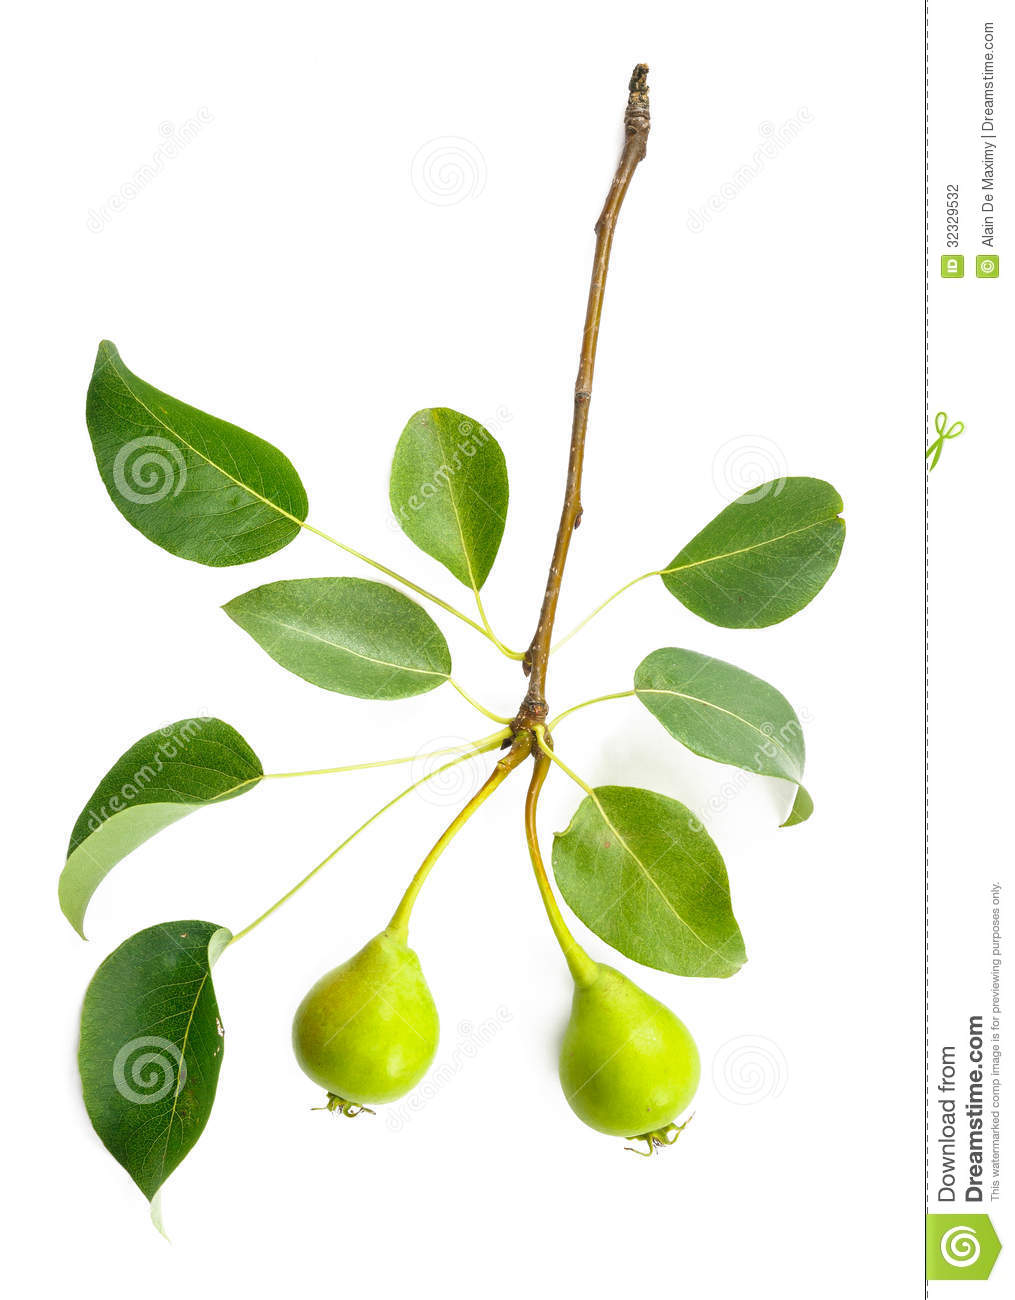 Pear tree branch with leaves and two little pears Tree Branch With Leaves